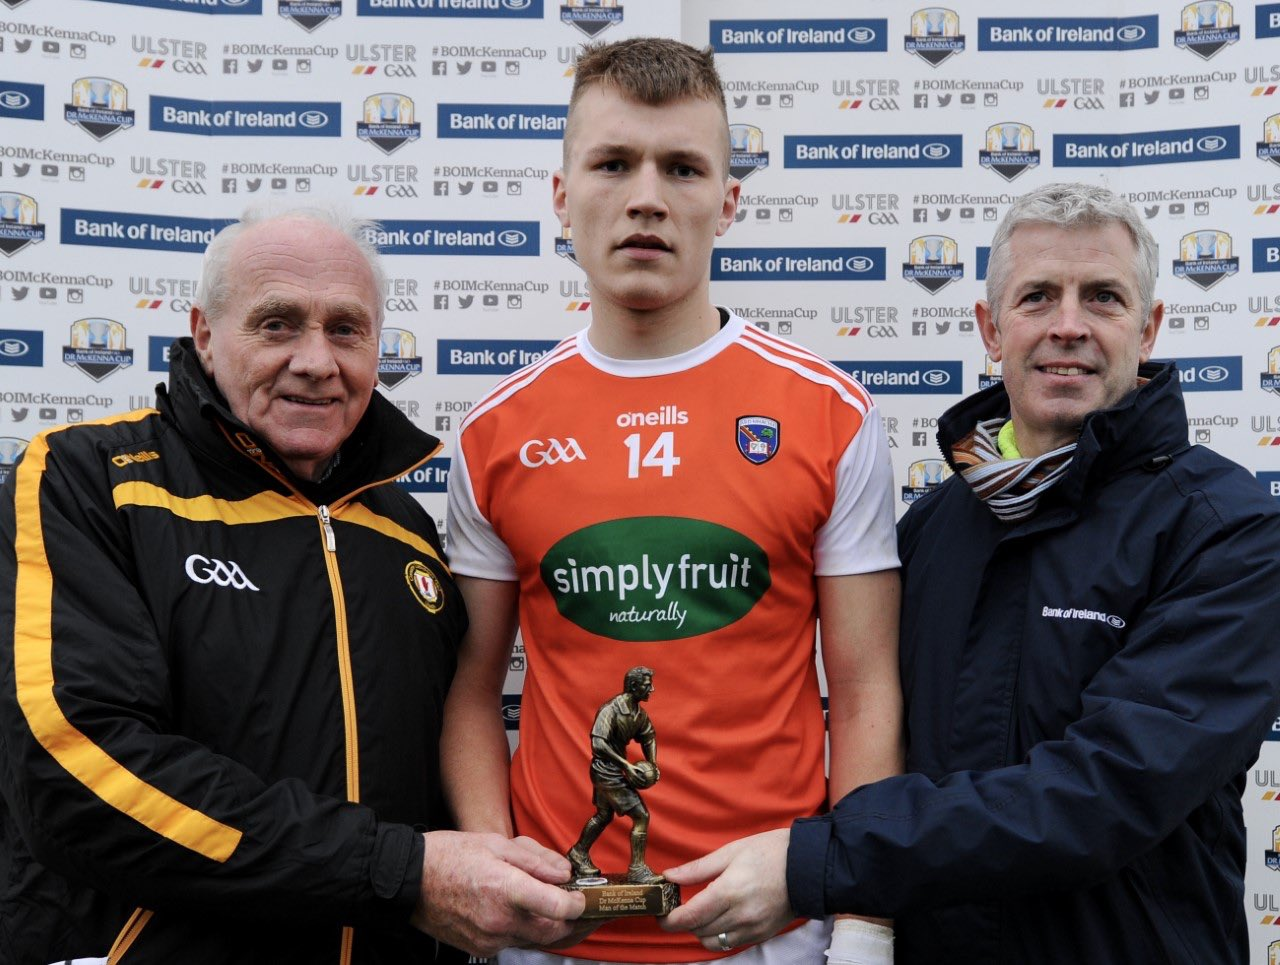 Match Report: Cavan vs Armagh